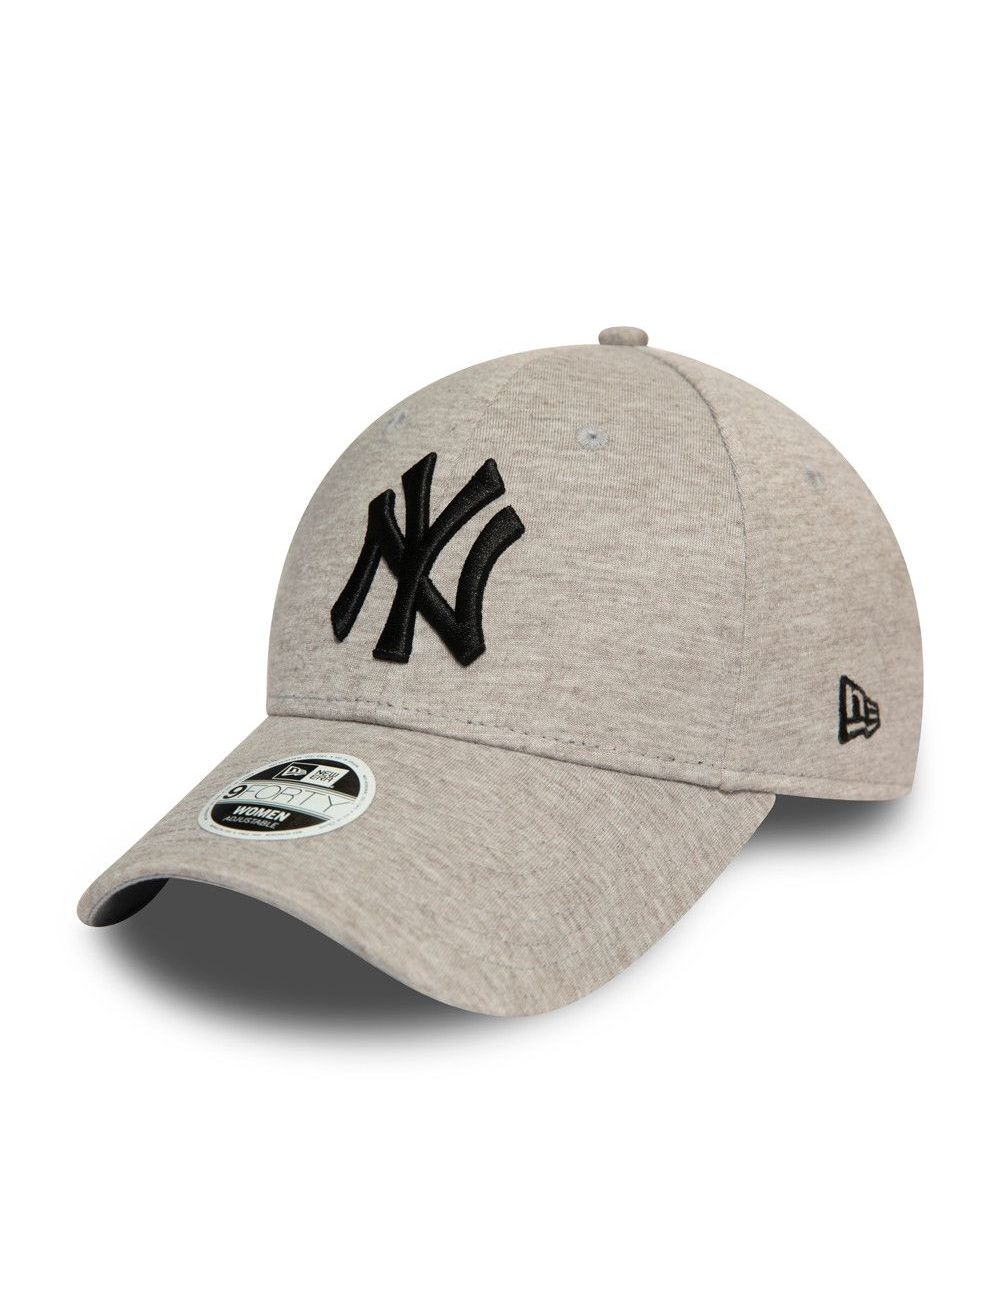 Casquette New Era Femme 9FORTY Jersey New York Yankees grise 12380753